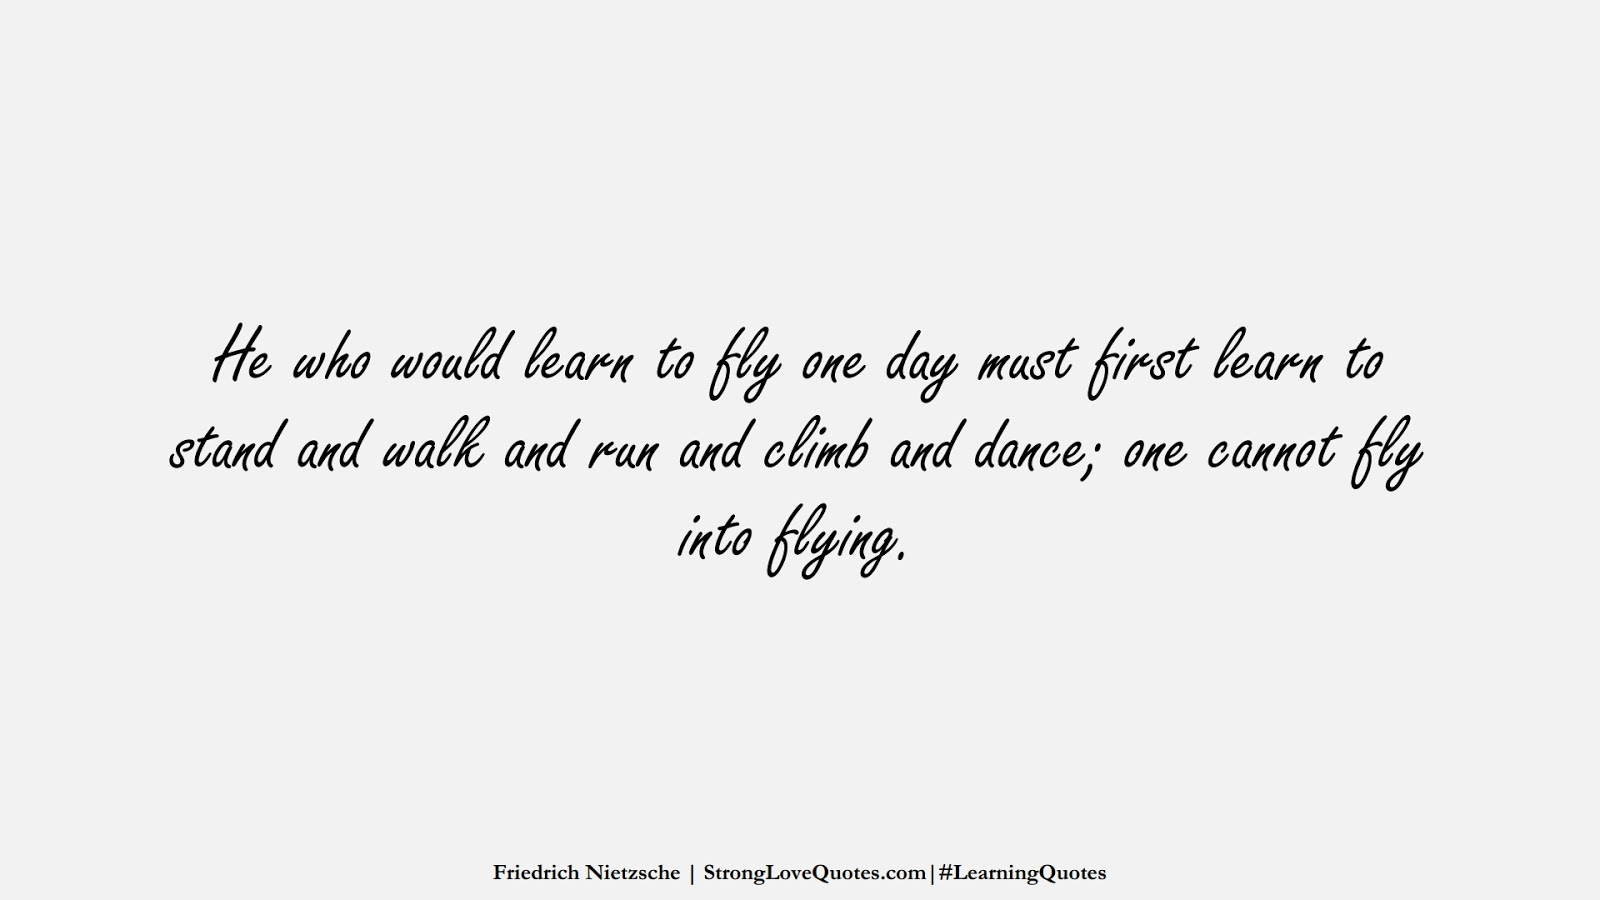 He who would learn to fly one day must first learn to stand and walk and run and climb and dance; one cannot fly into flying. (Friedrich Nietzsche);  #LearningQuotes